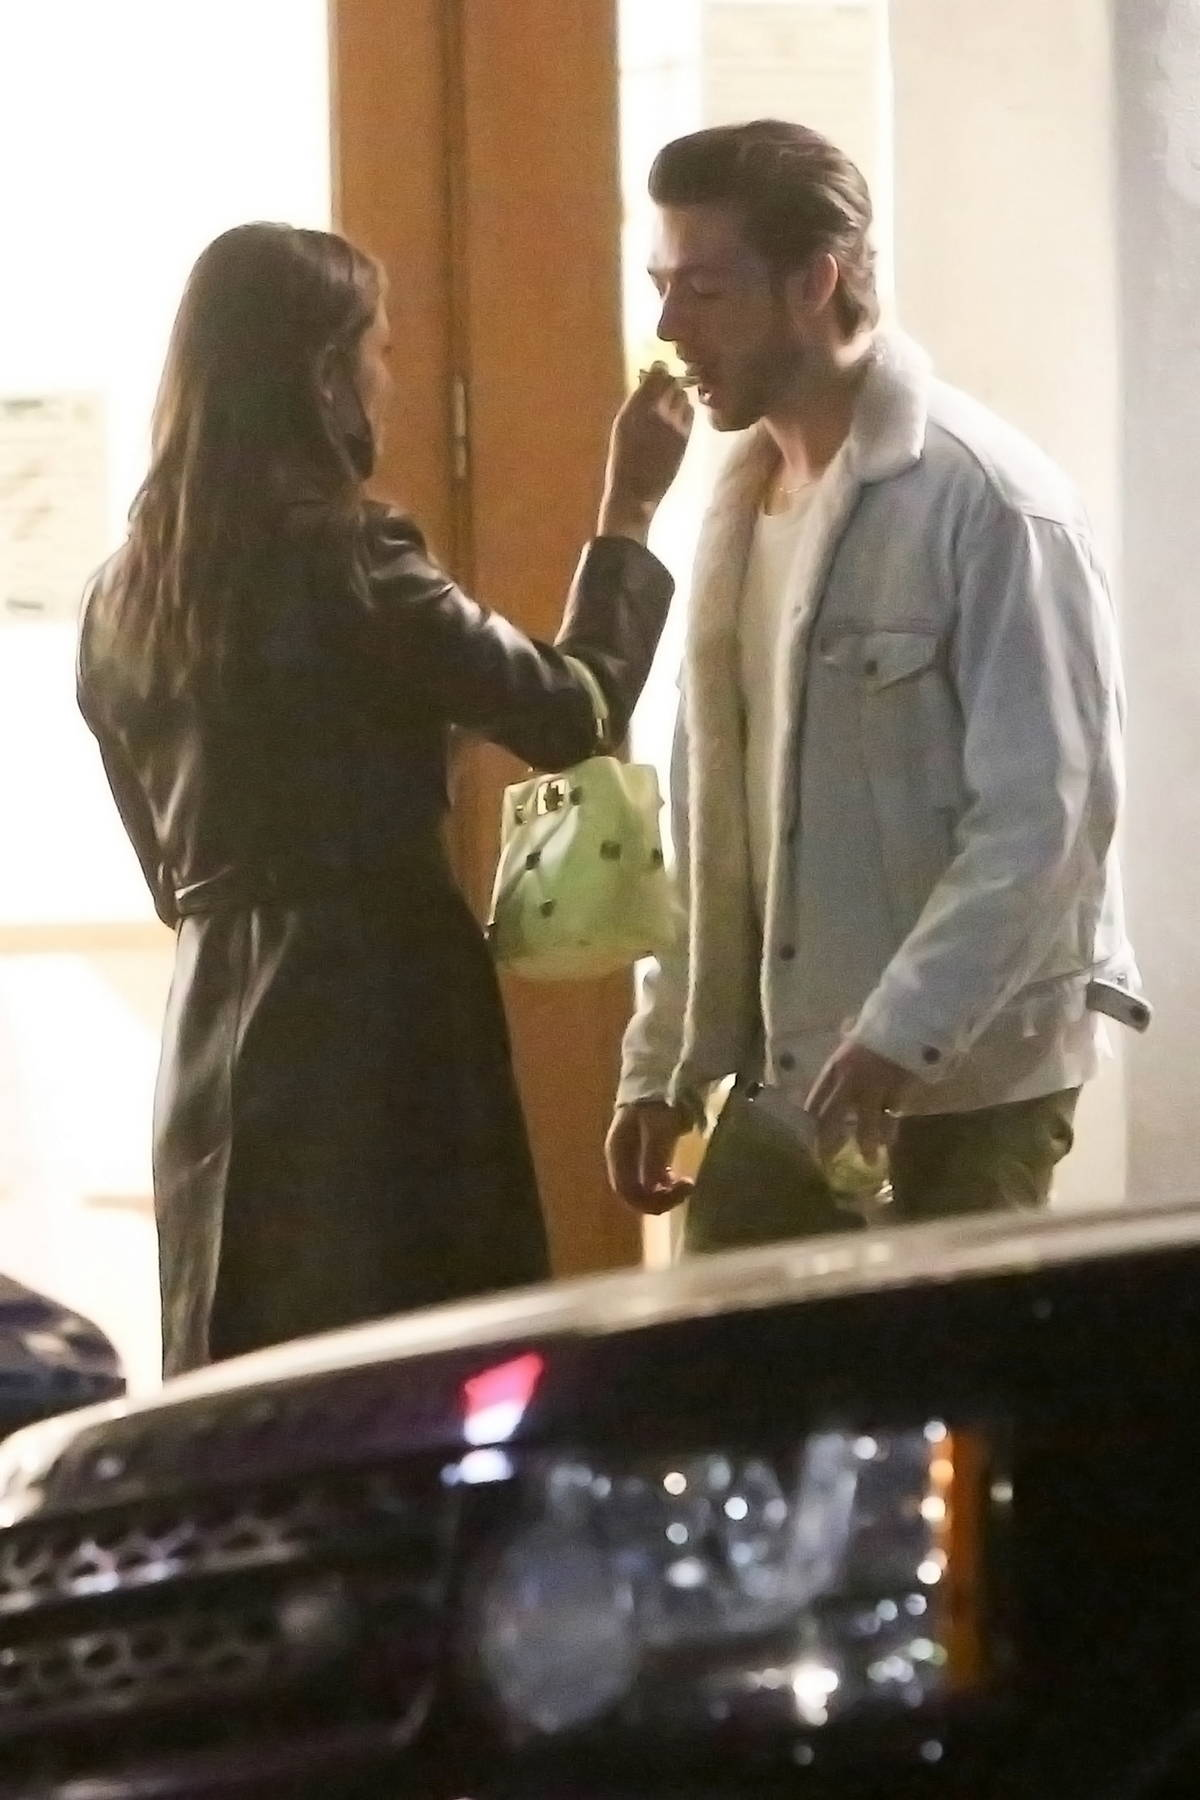 Eiza Gonzalez shares an ice cream with a mystery man in Los Angeles